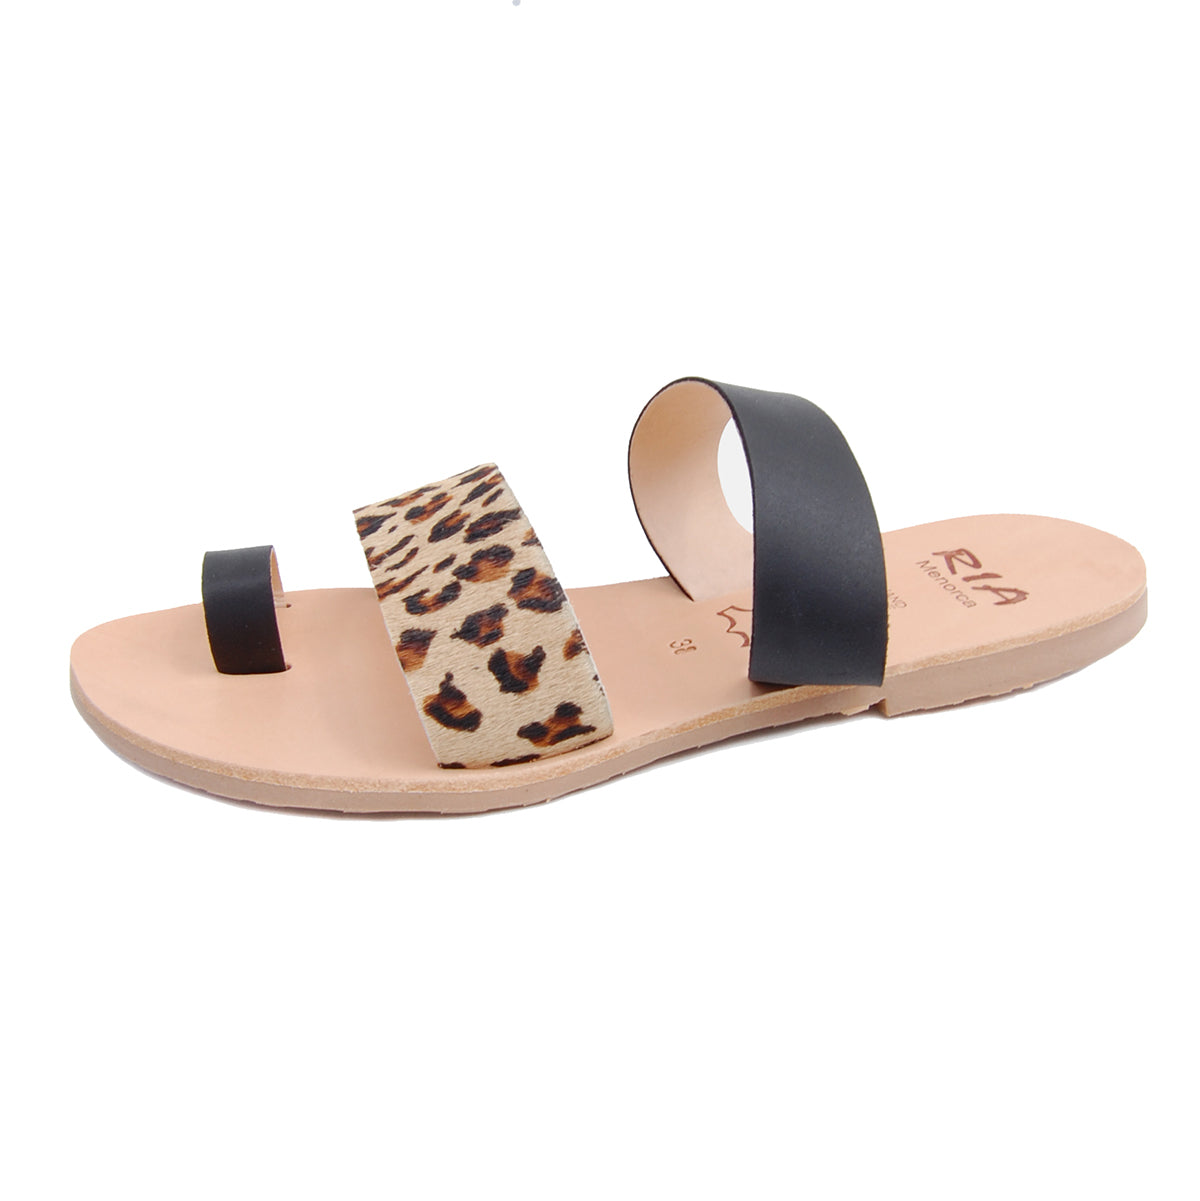 Rico Spanish Slides in Leopard